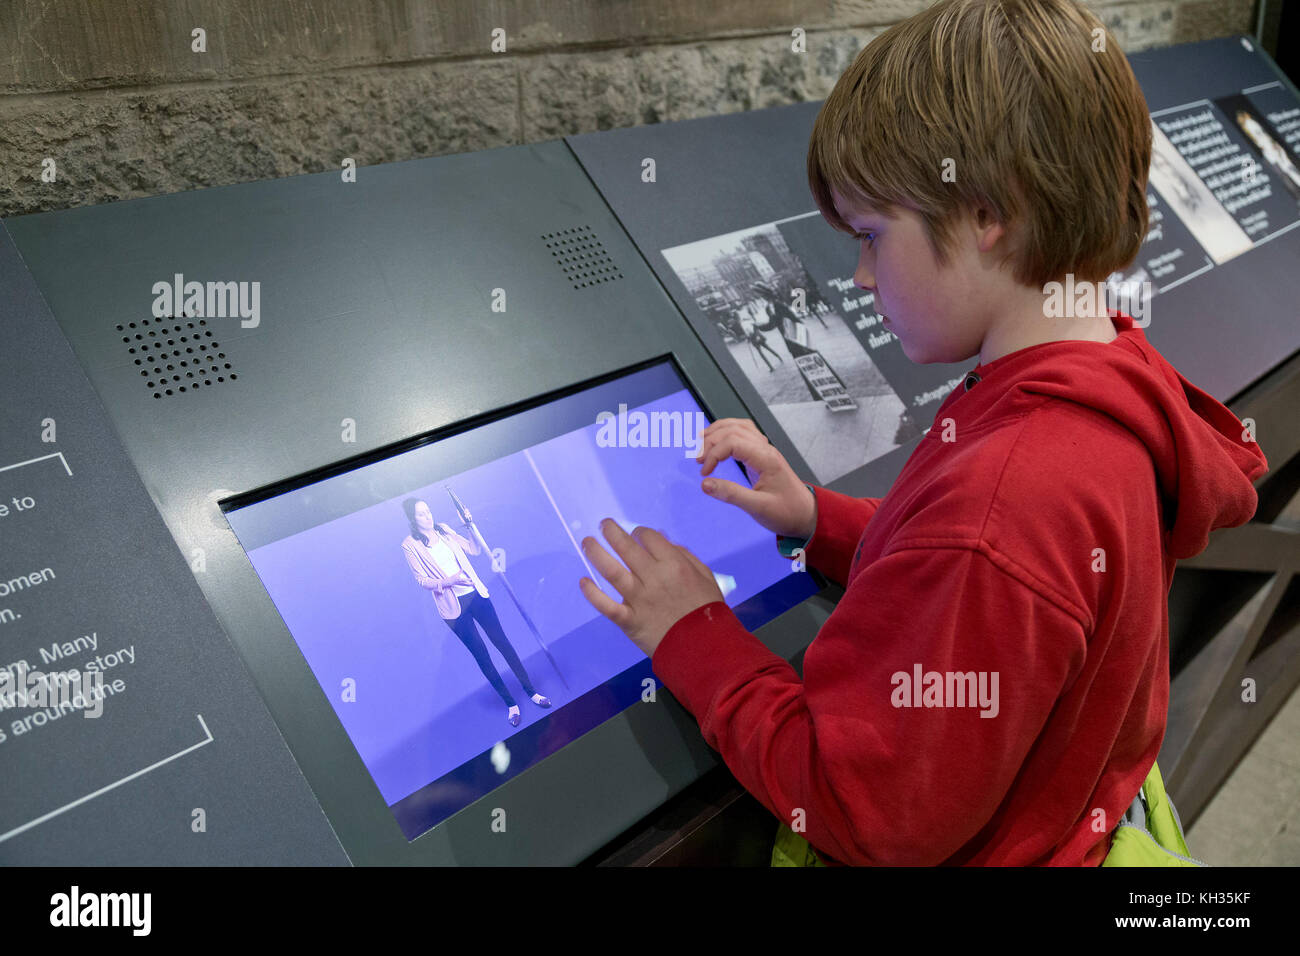 boy using an information monitor inside Wallace Monument, Stirling, Scotland, Great Britain - Stock Image